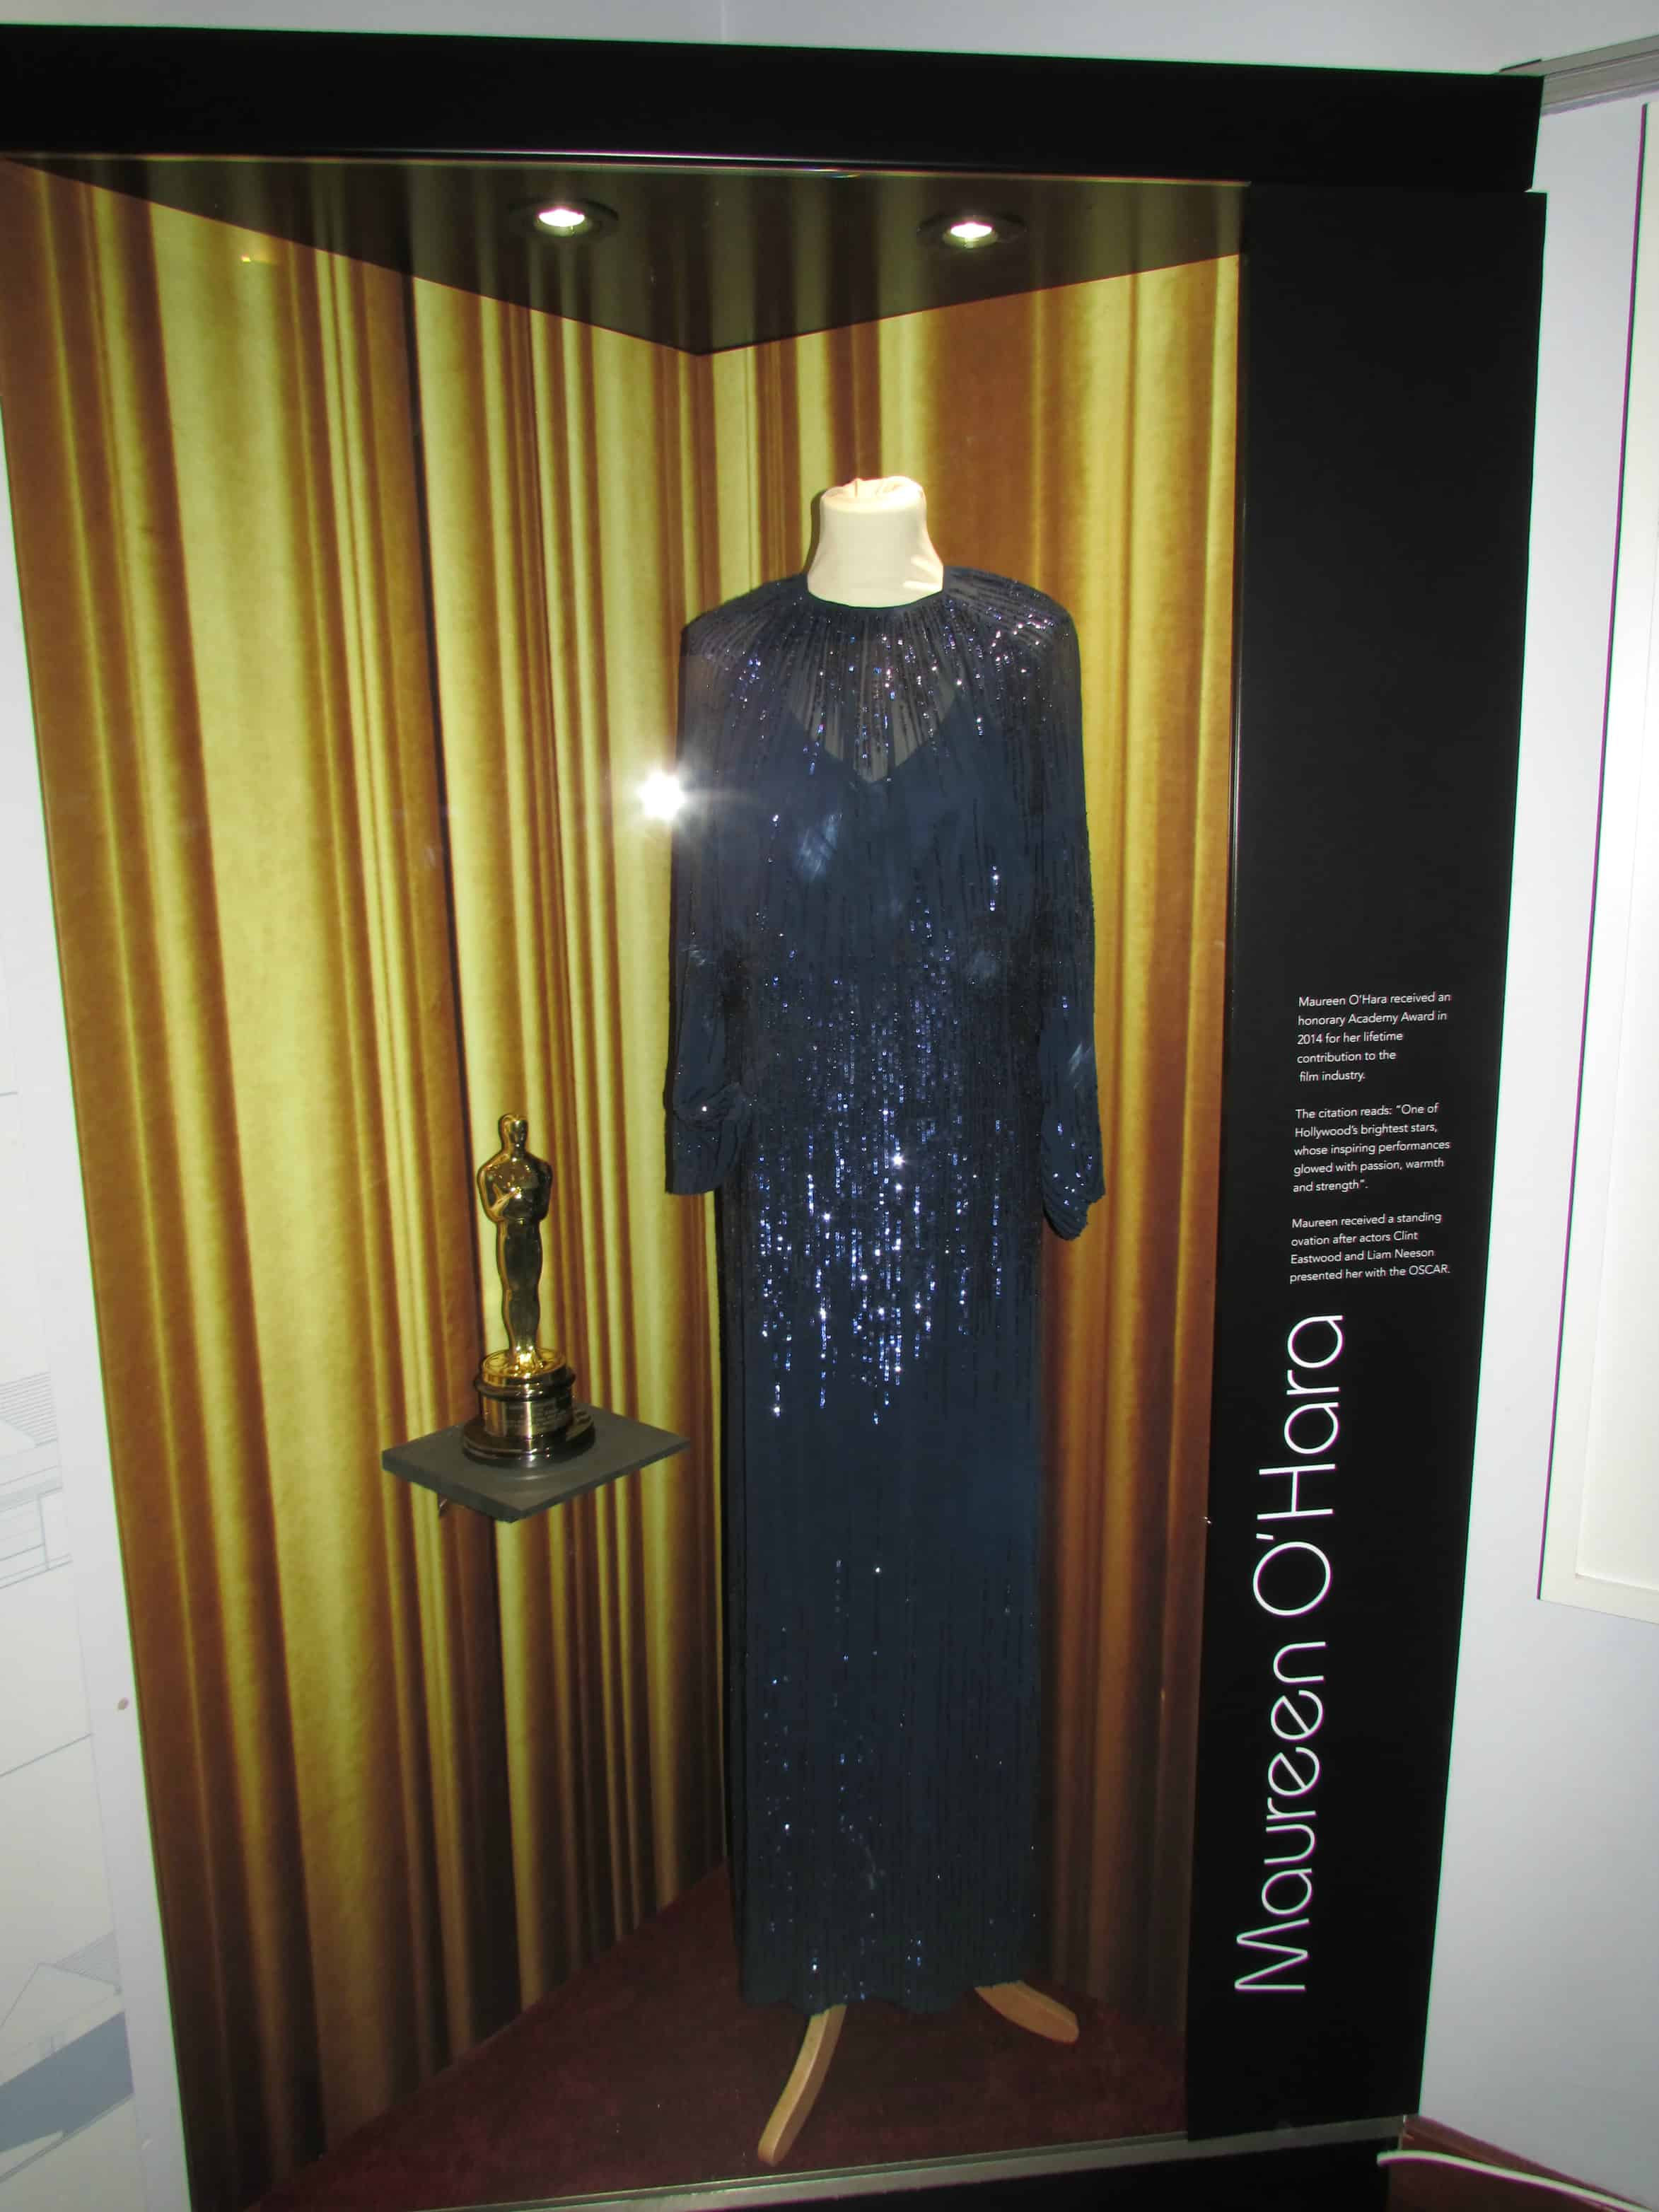 Maureen O'Hara's Oscar Gown and Award